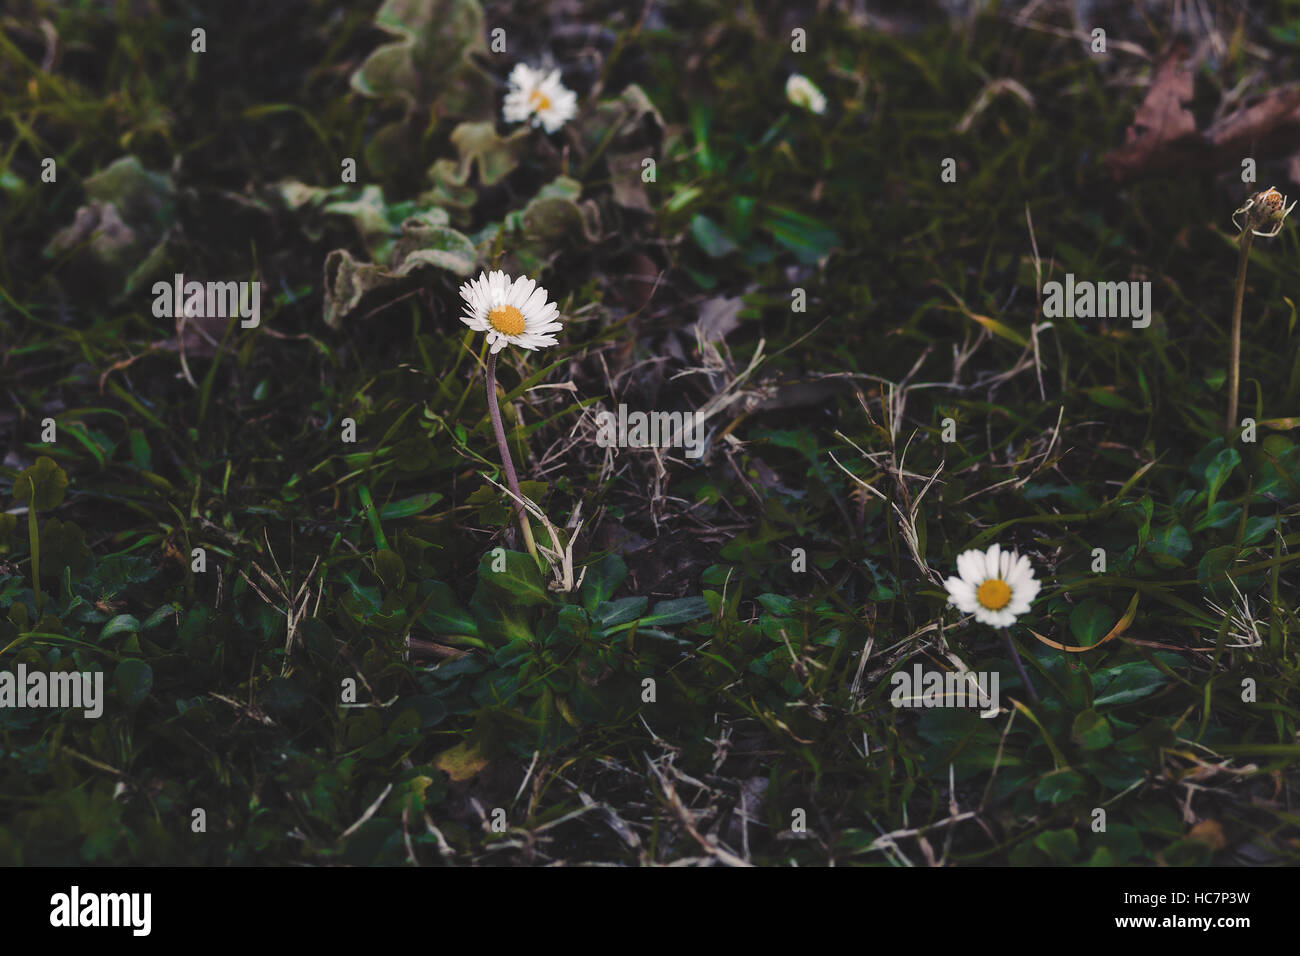 Daisy Flower Growing In The Grass Stock Photo 128019469 Alamy